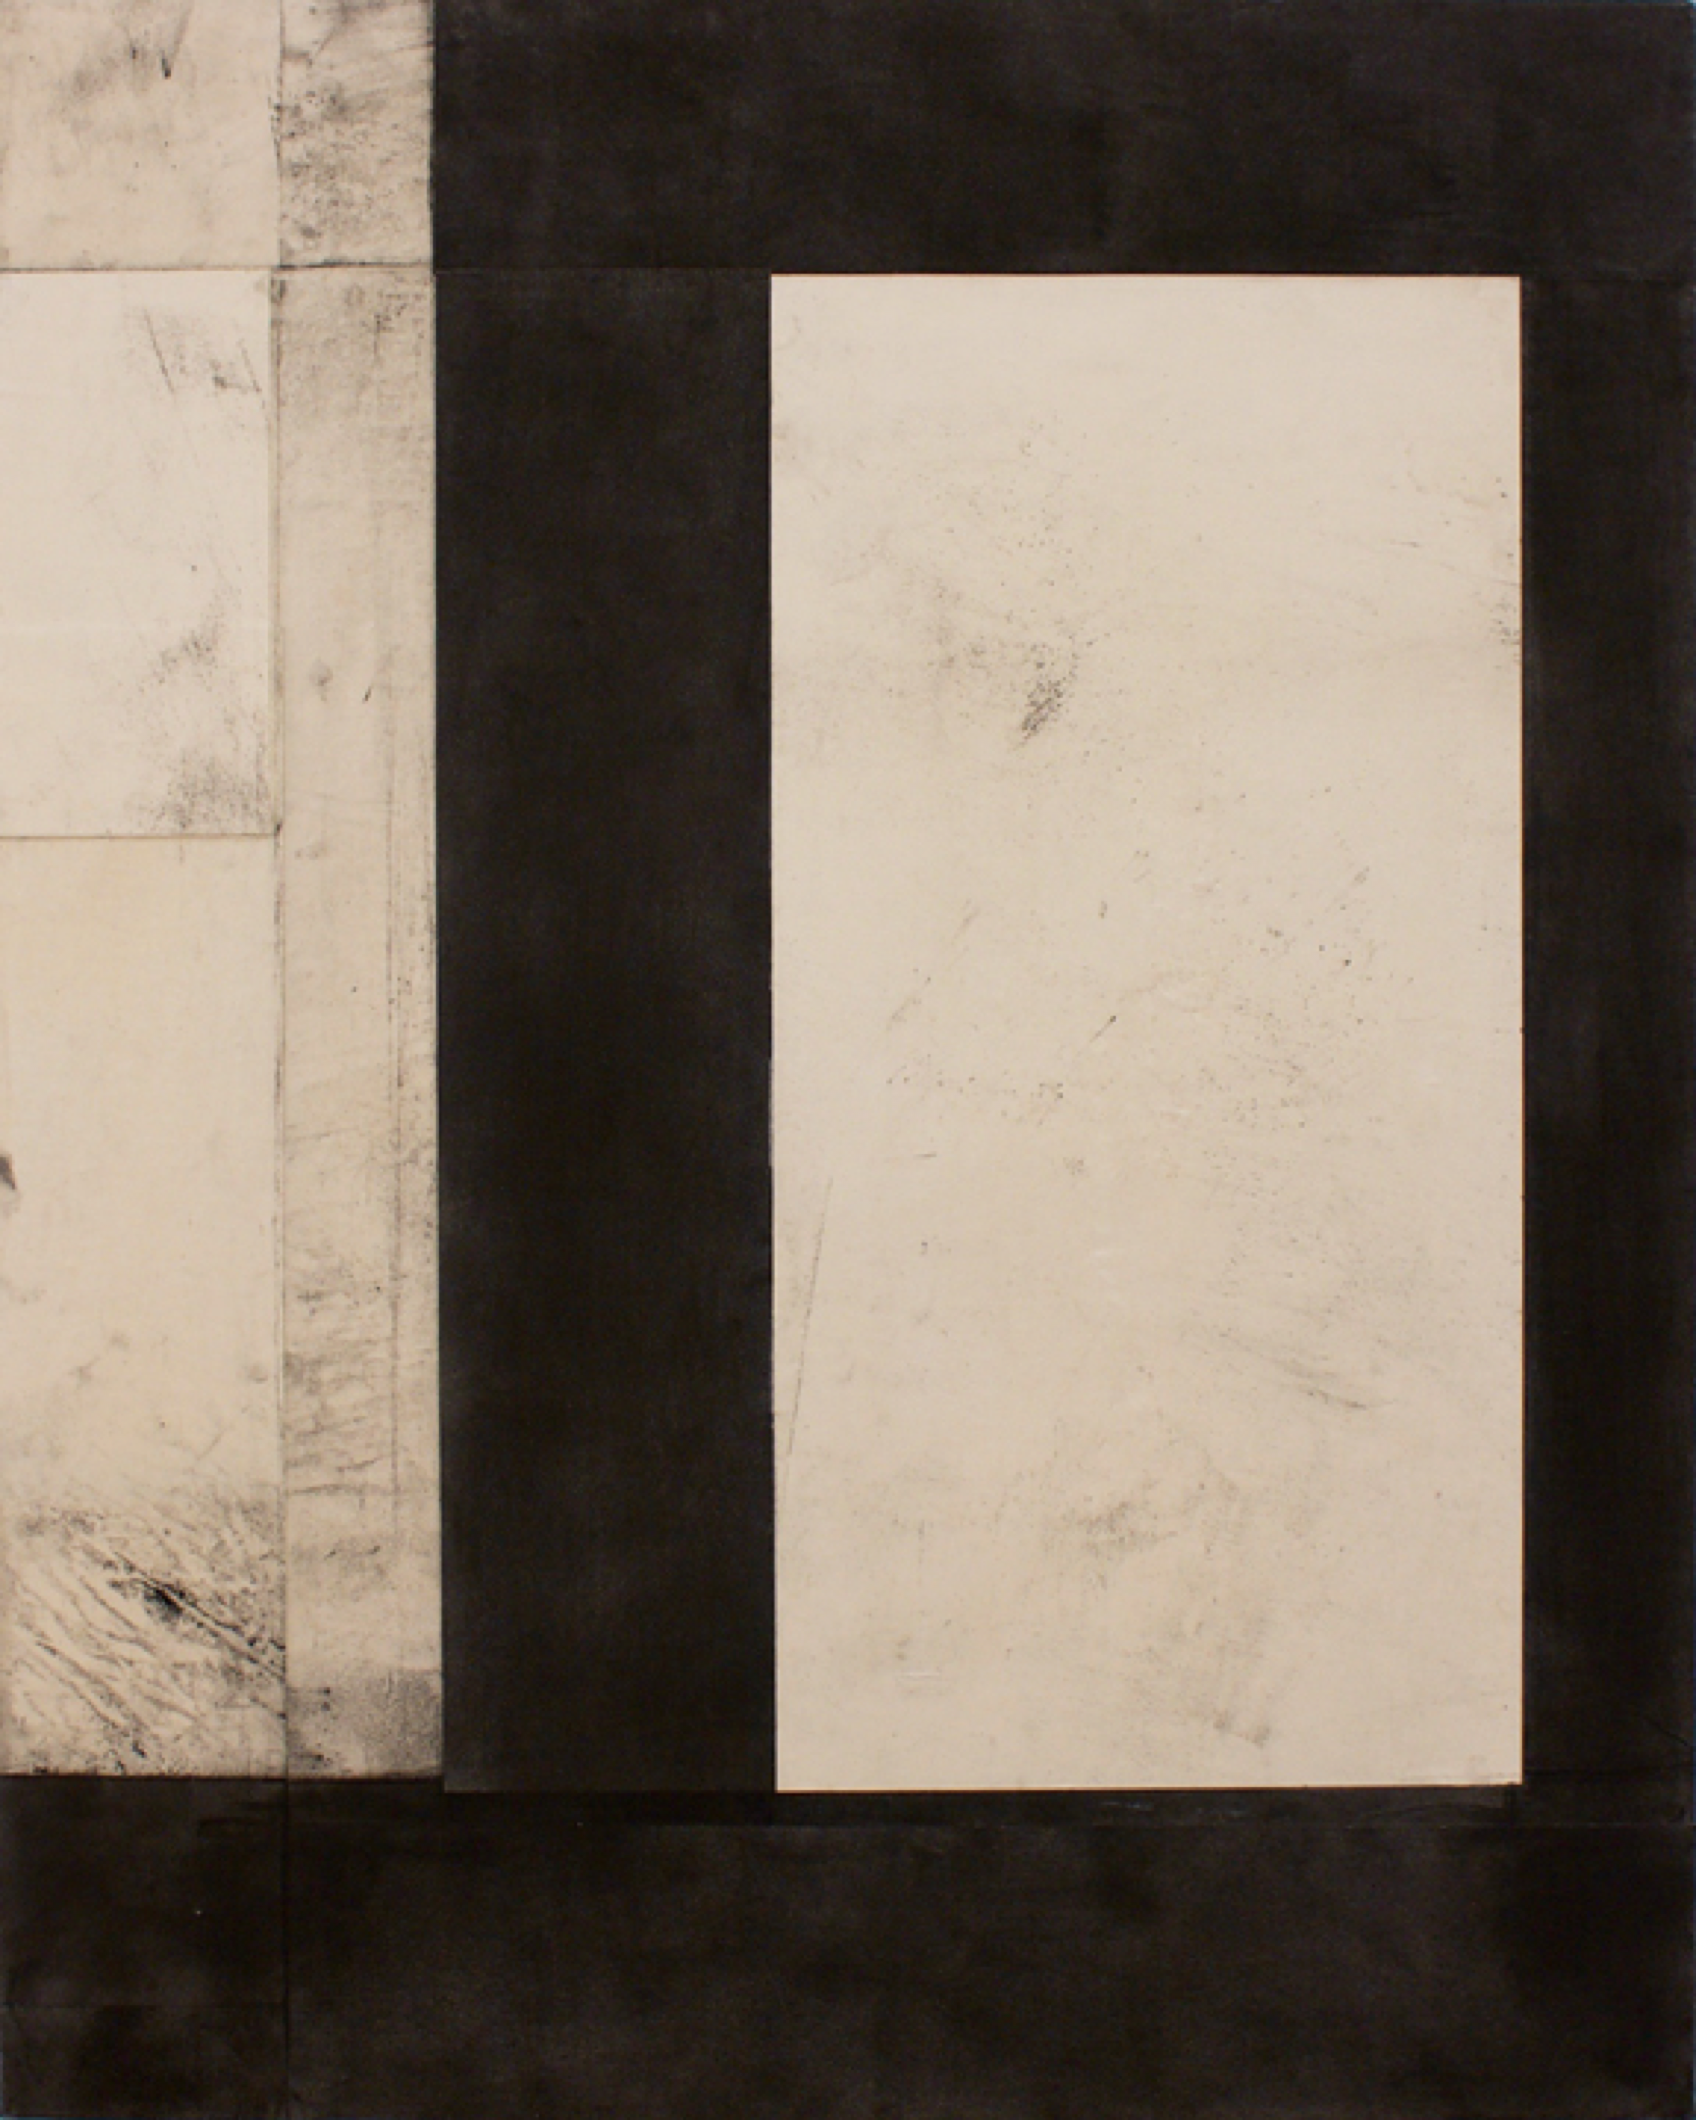 "Telemark XXVII  Laura Duerwald LAD107 Graphite, Paper, and Acrylic on Canvas 30"" x 24"""